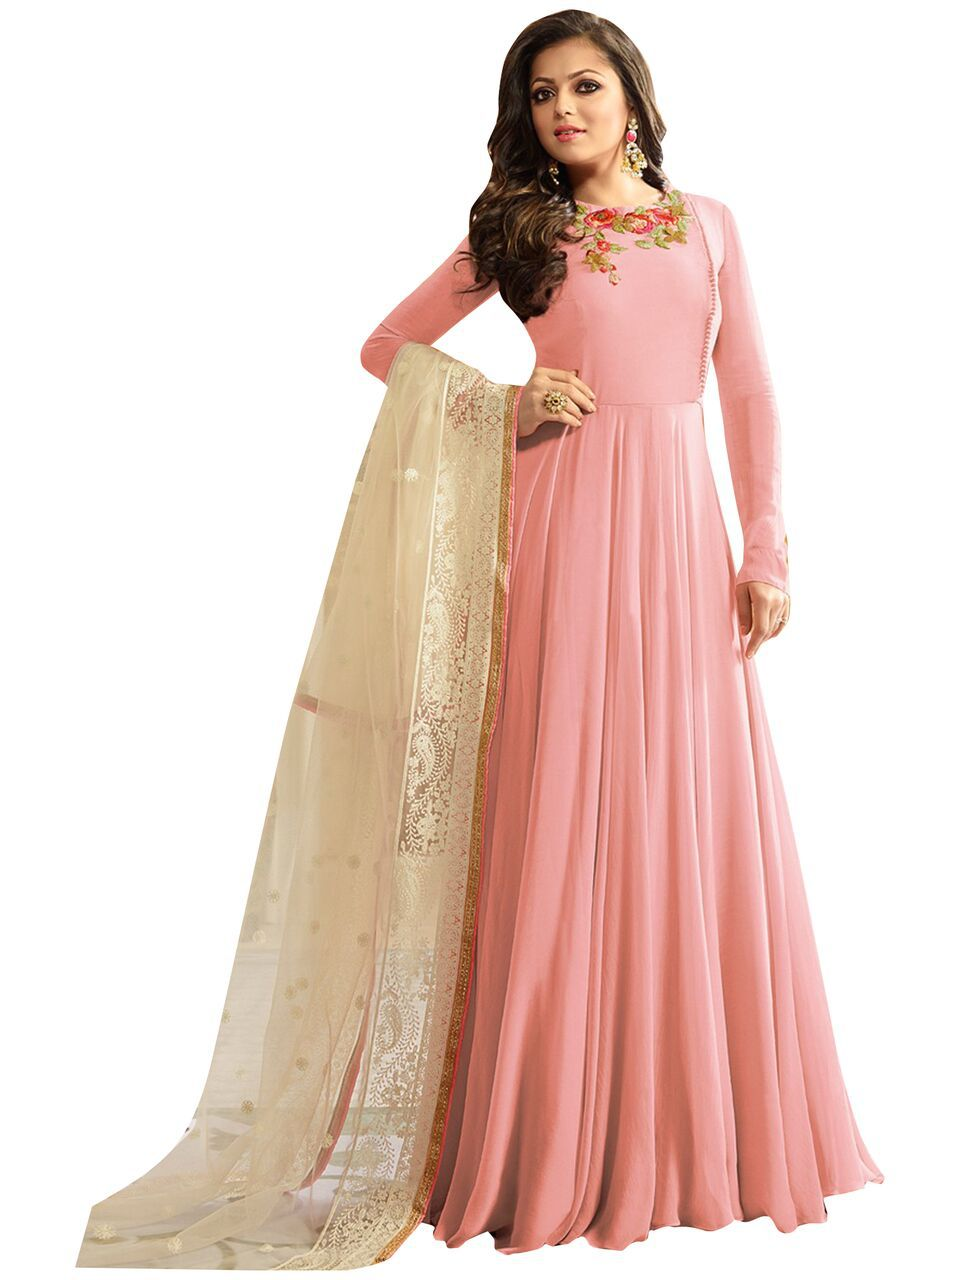 109372eb5a DEVAL CREATION Pink and Orange Georgette Anarkali Gown Semi-Stitched Suit -  Buy DEVAL CREATION Pink and Orange Georgette Anarkali Gown Semi-Stitched  Suit ...